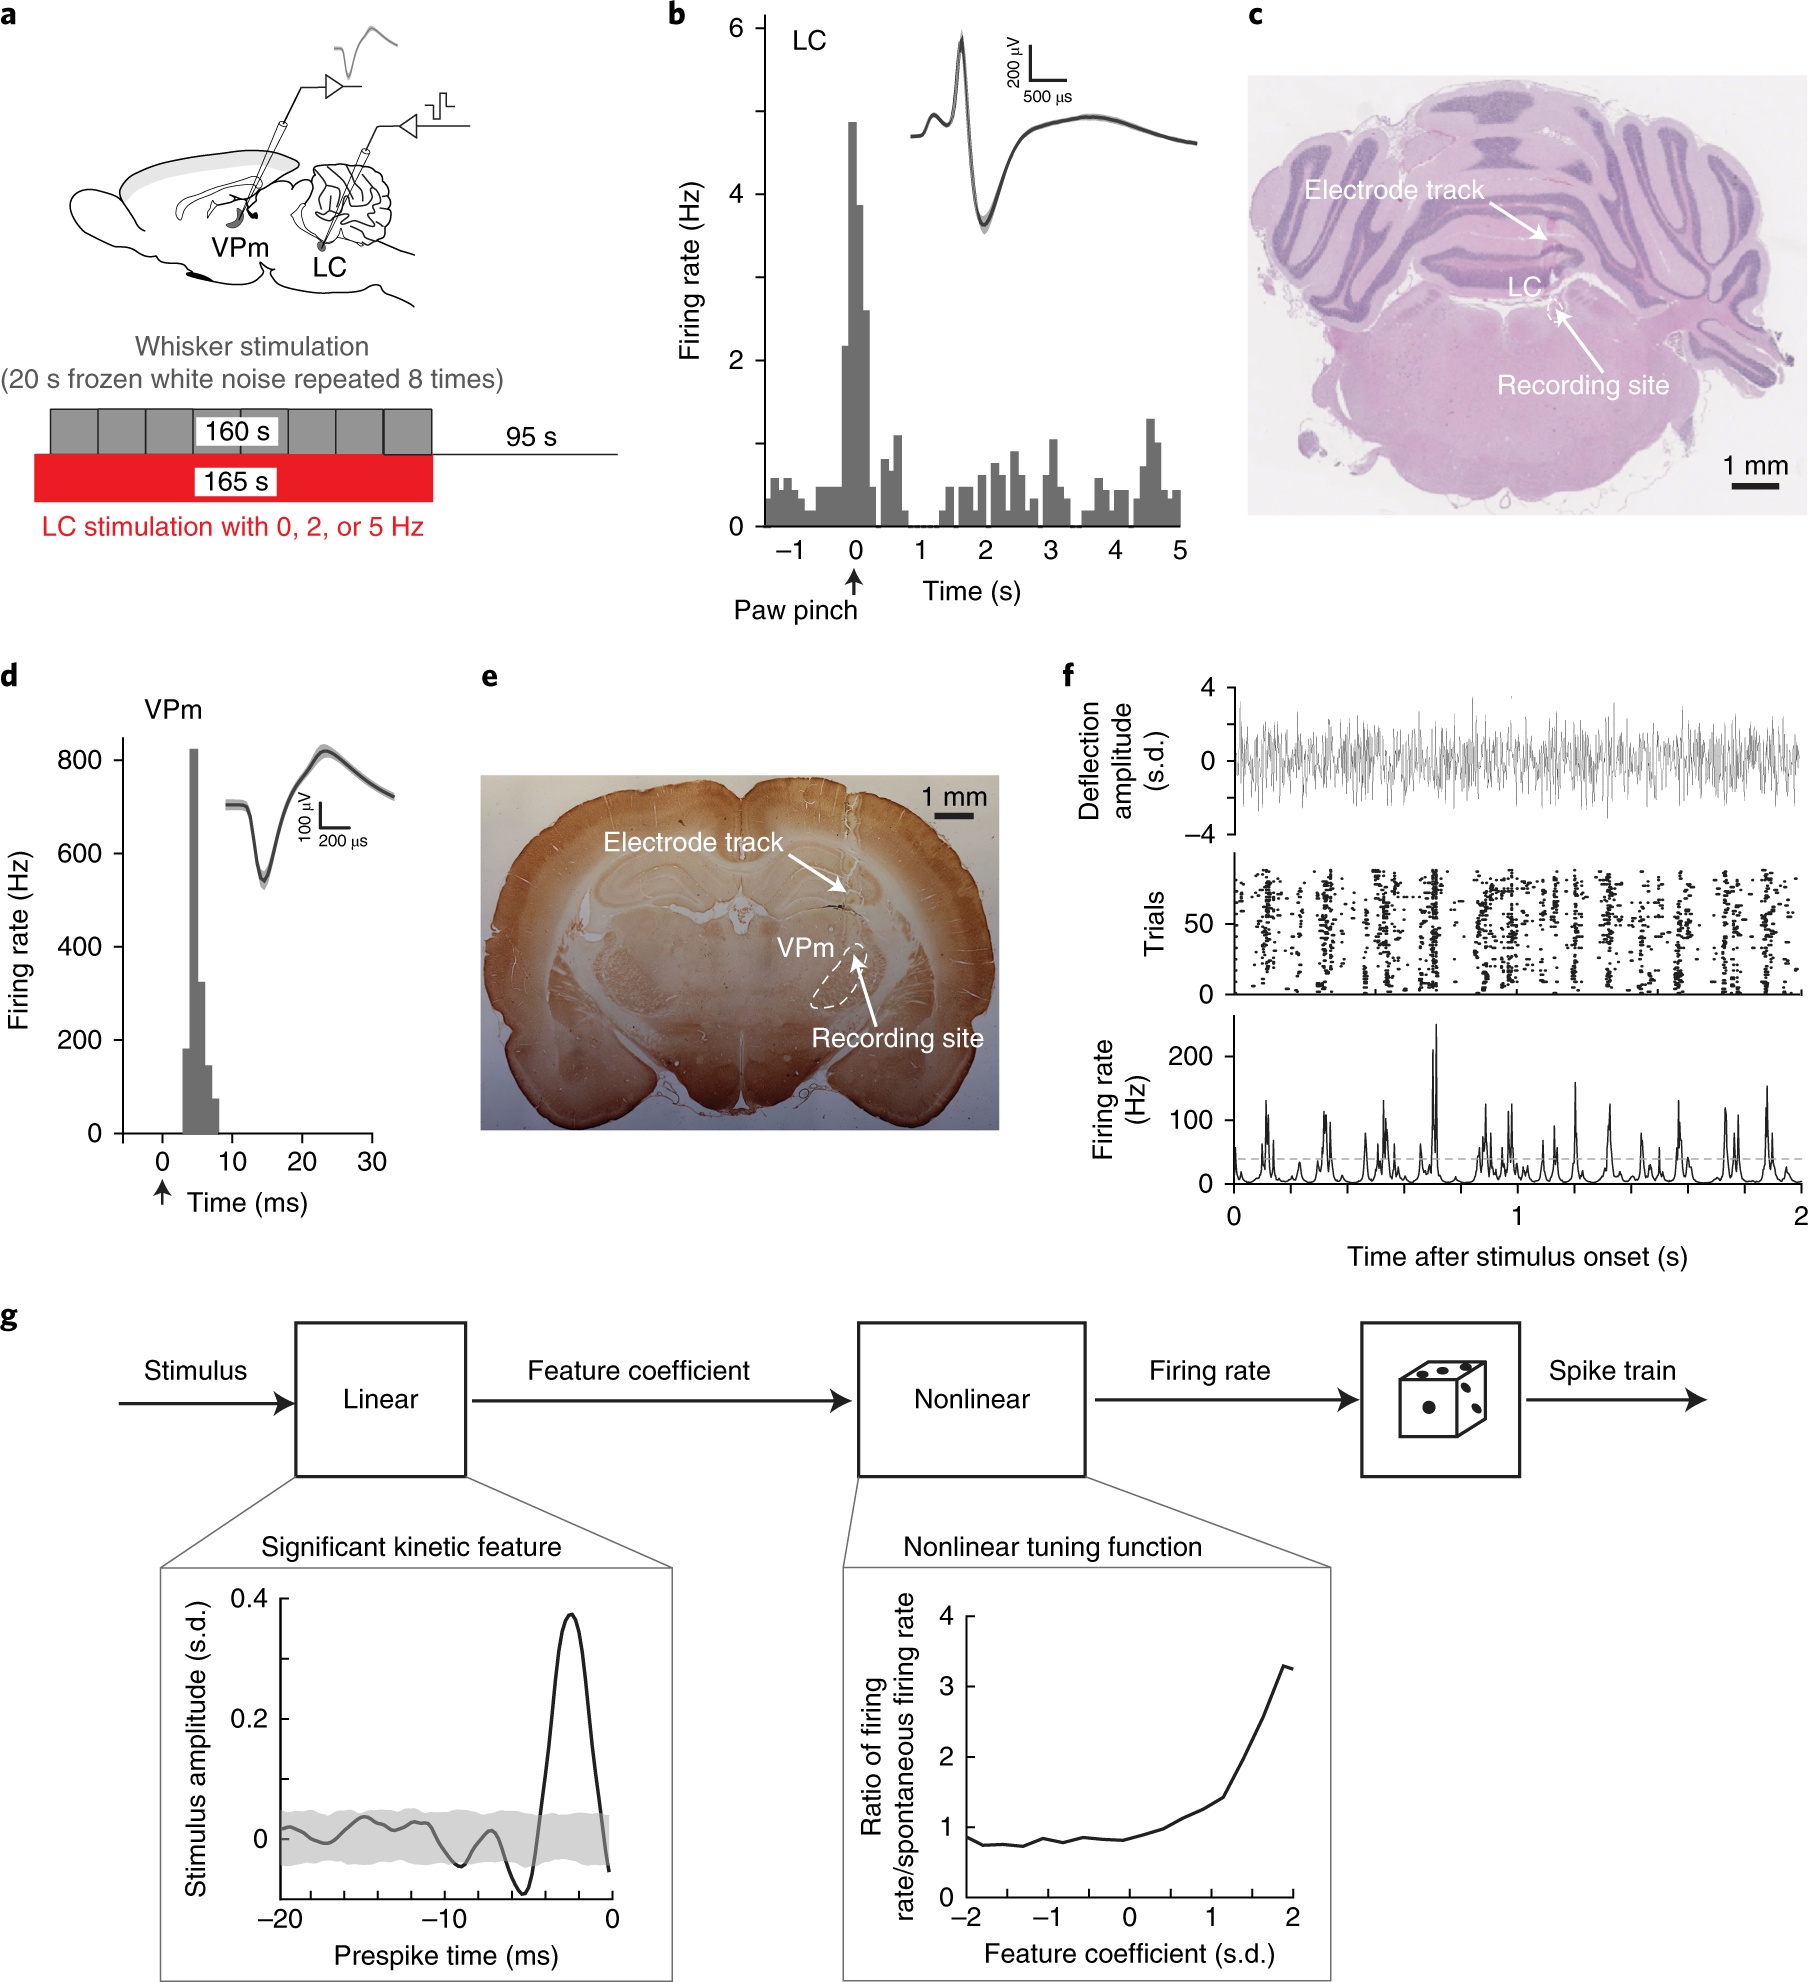 Locus Coeruleus Activation Enhances Thalamic Feature Selectivity Via Circuit Impedance Edit Response Natural Respond Norepinephrine Regulation Of Intrathalamic Dynamics Nature Neuroscience